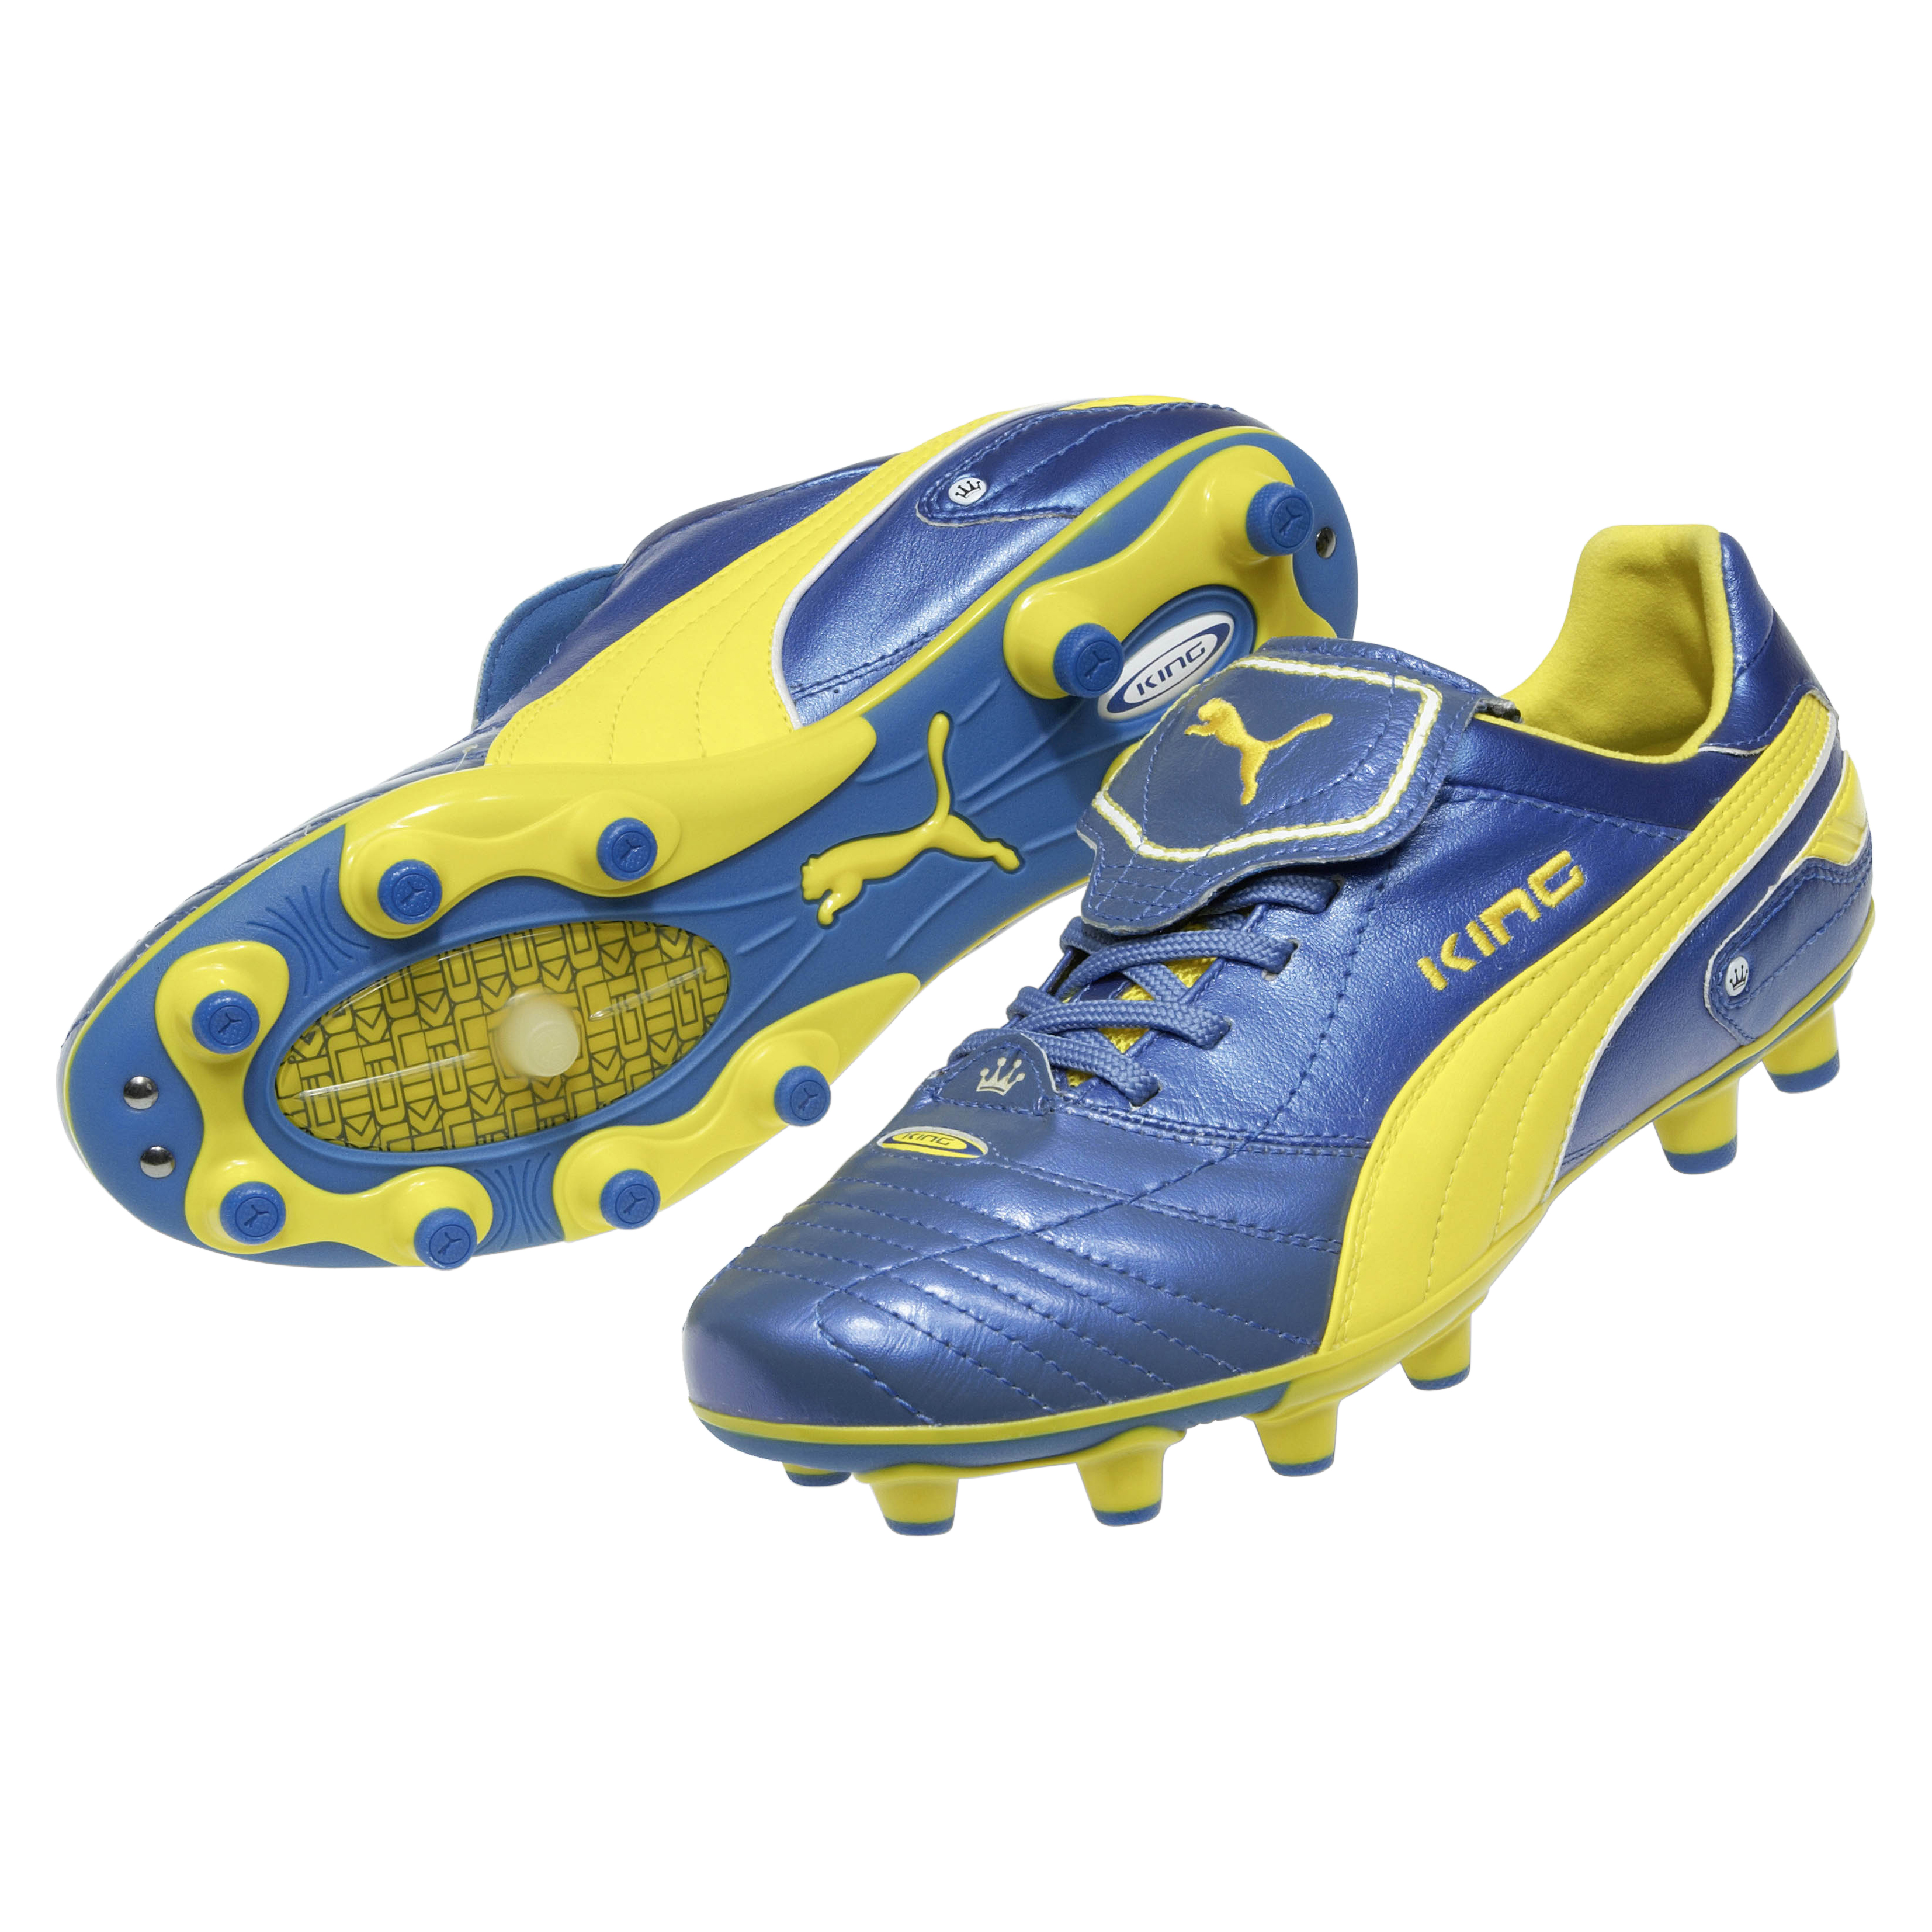 Puma King Finale i Firm Ground Football Boots - Blue Metallic/Dandelion/White